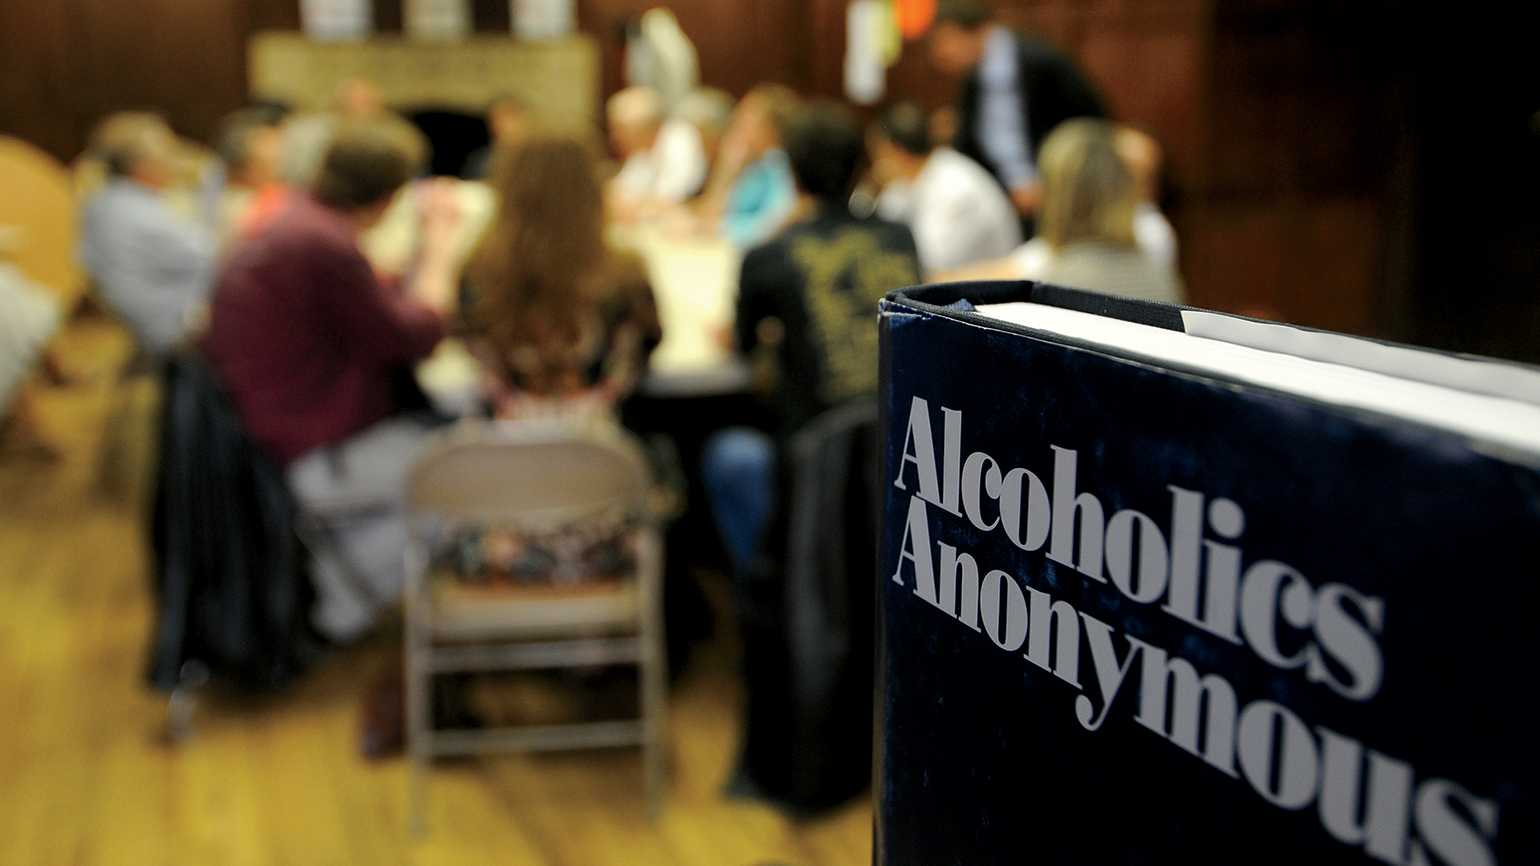 An Alcoholics Anonymous meeting